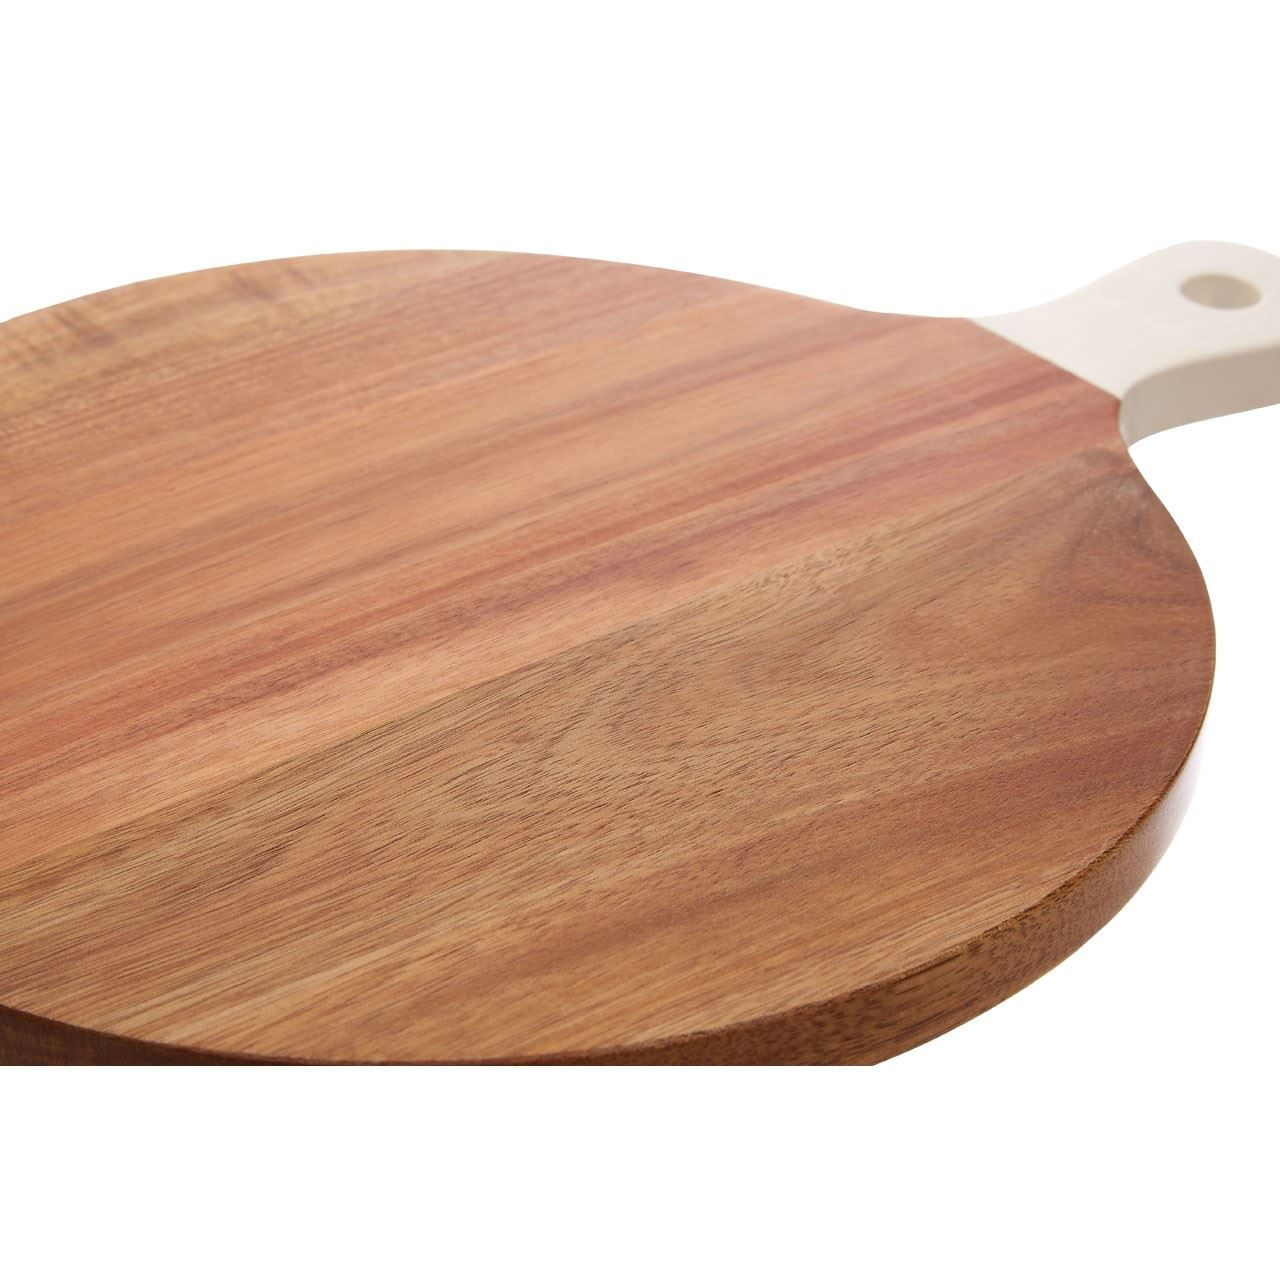 Chopping-Boards-Wooden-Cutting-Serving-Naturally-Antibacterial thumbnail 16